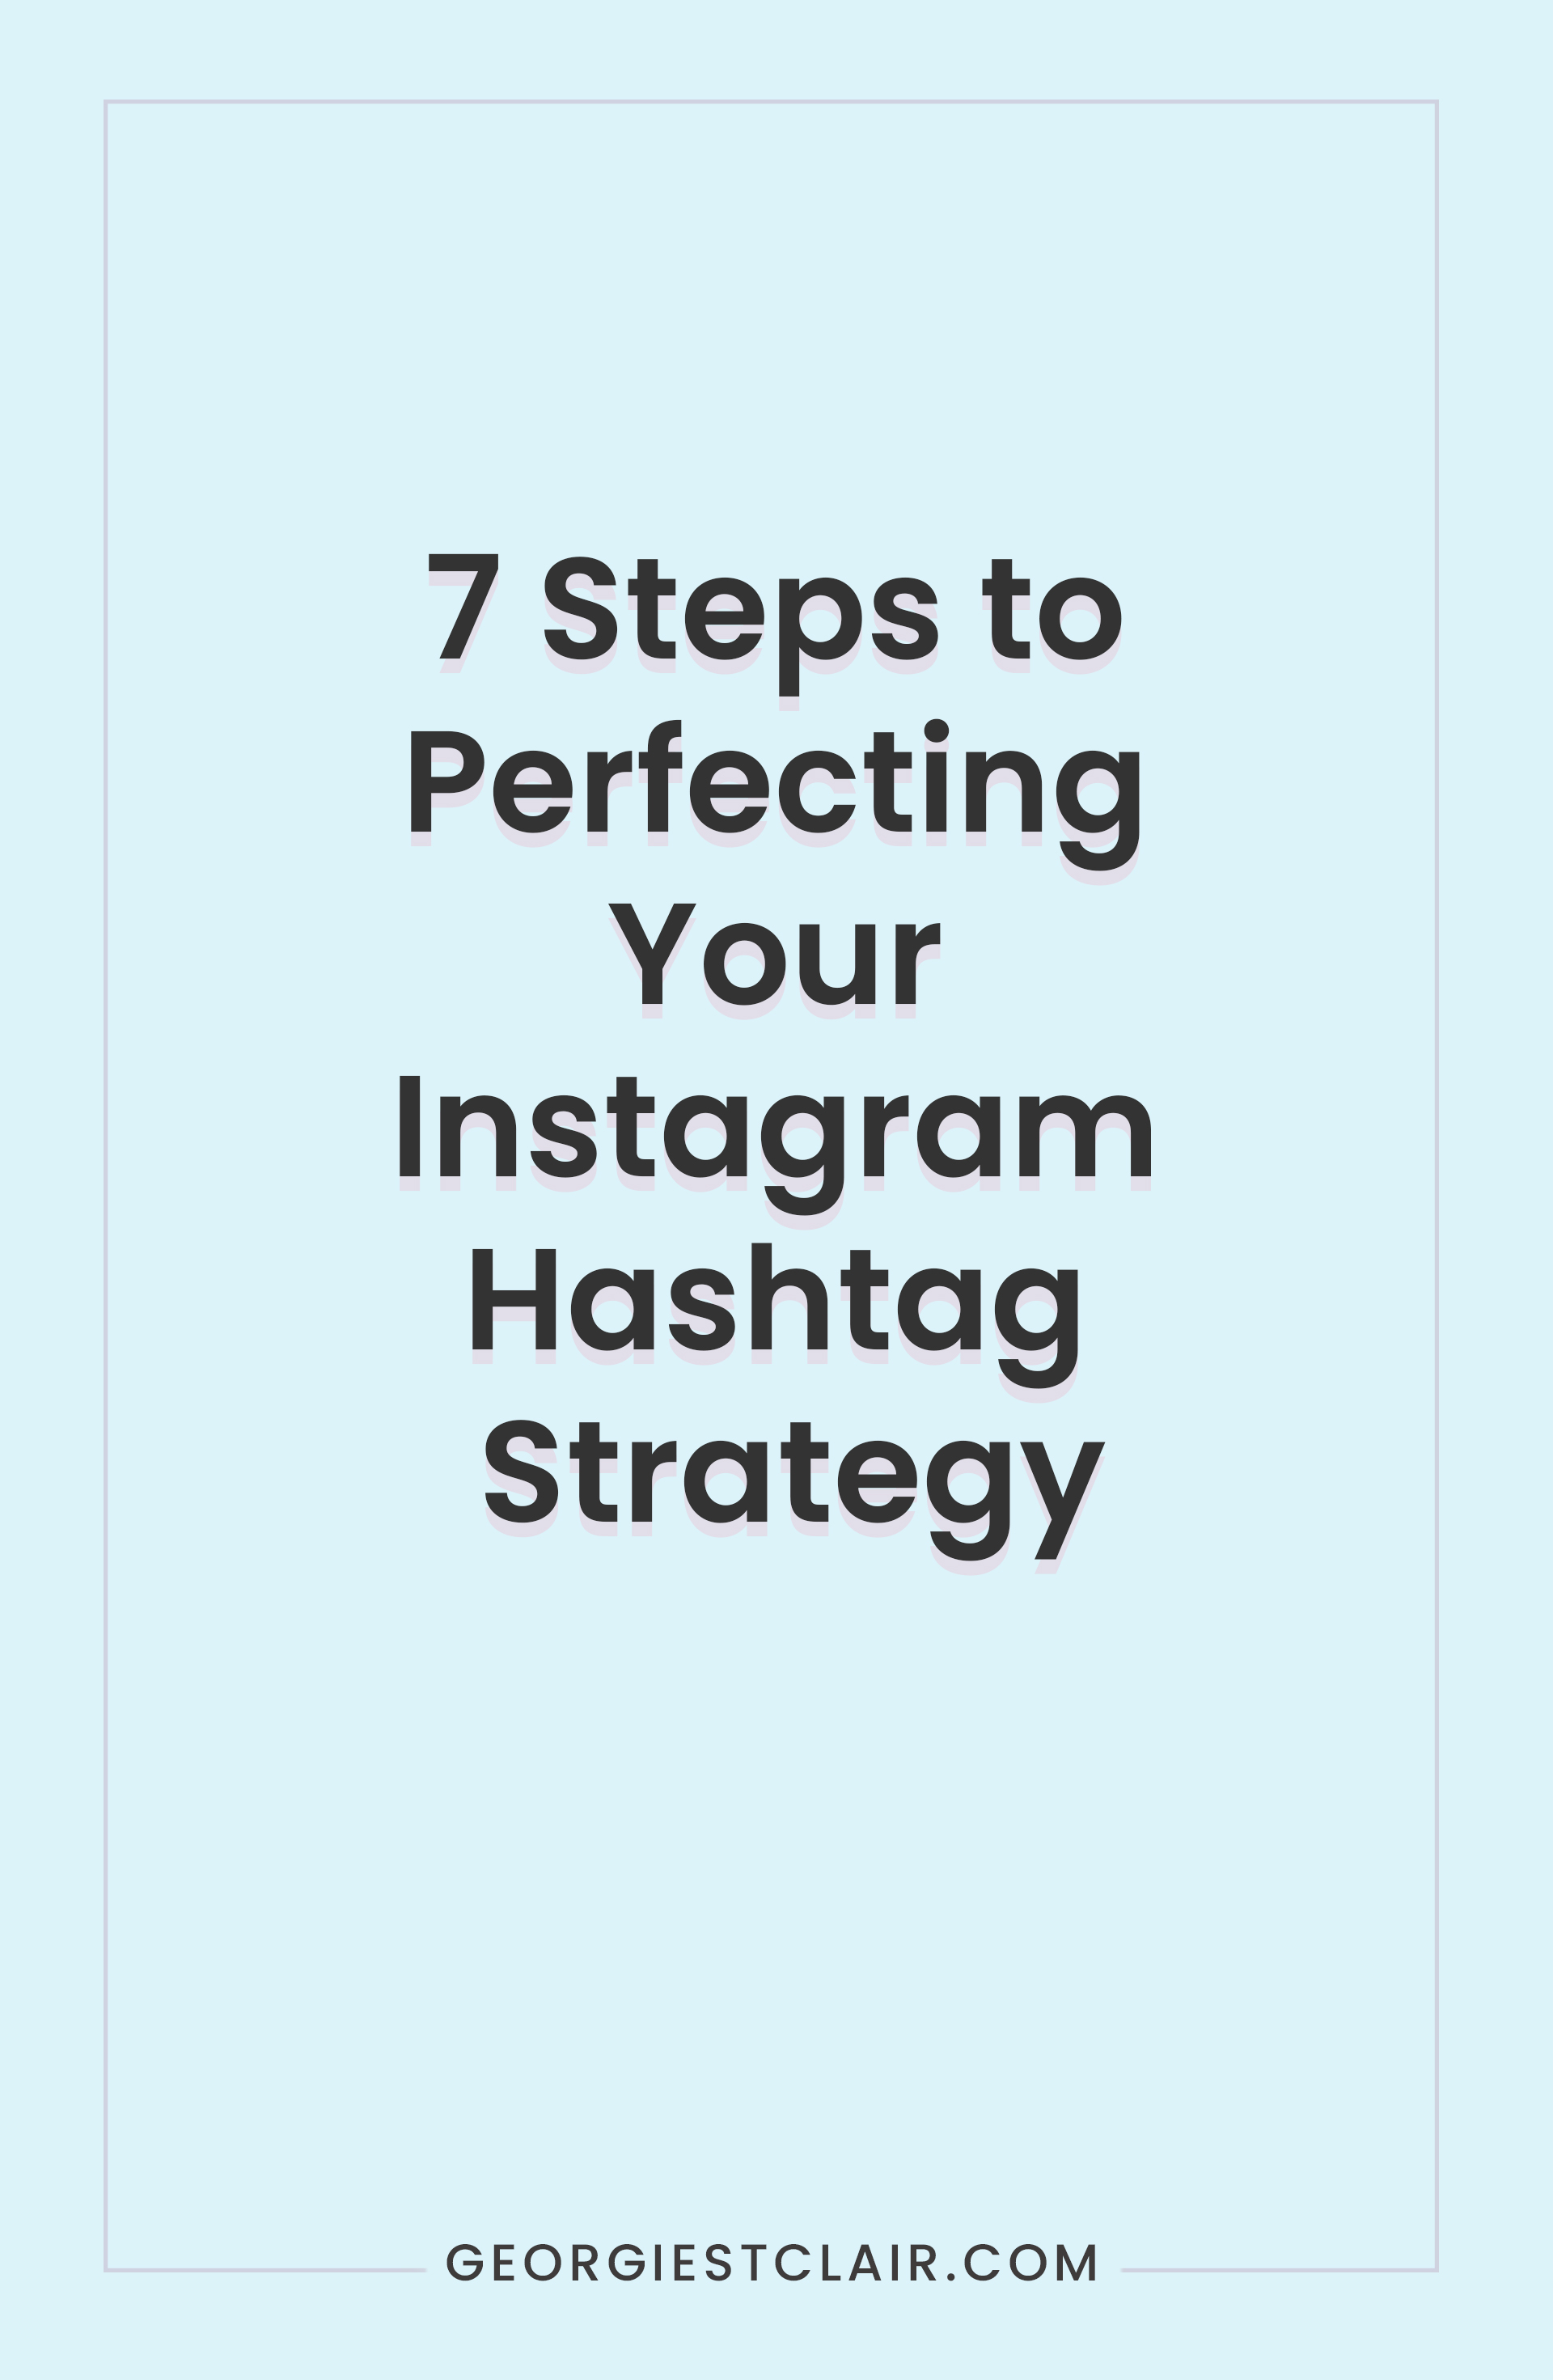 7 Steps to Perfecting Your Instagram Hashtag Strategy Pinterest Image